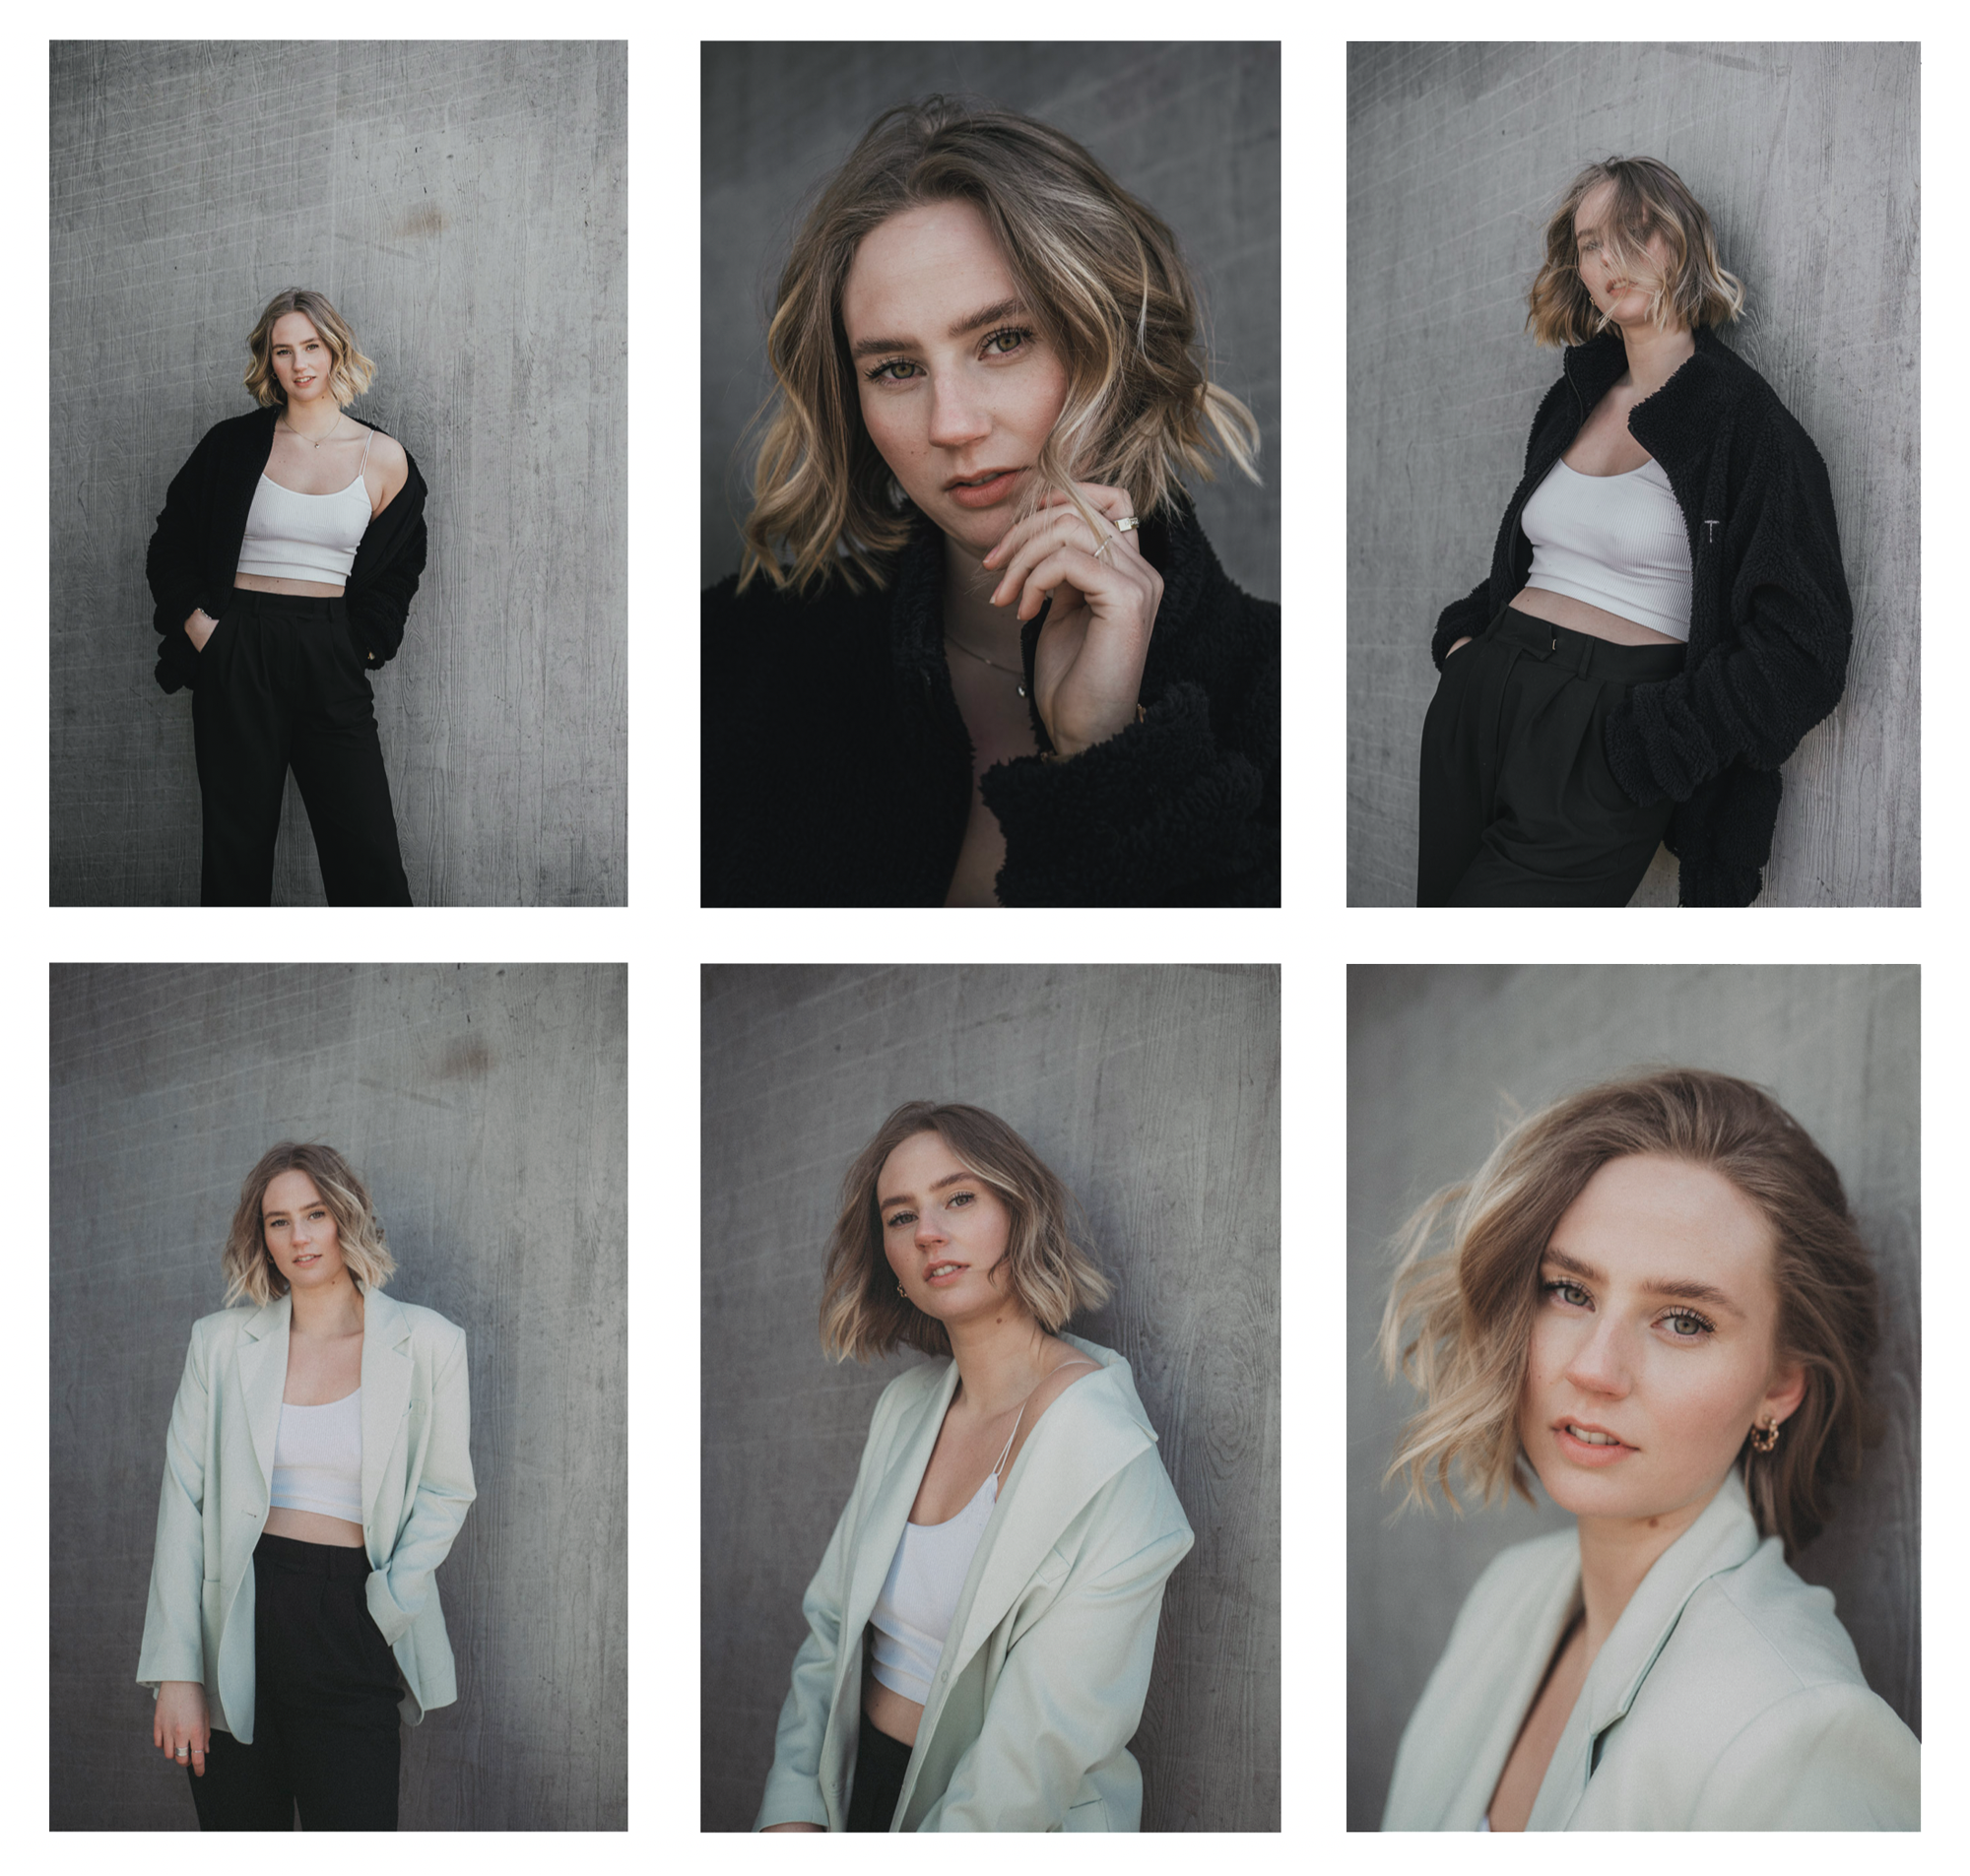 Portraits of Evelina Bergqvist